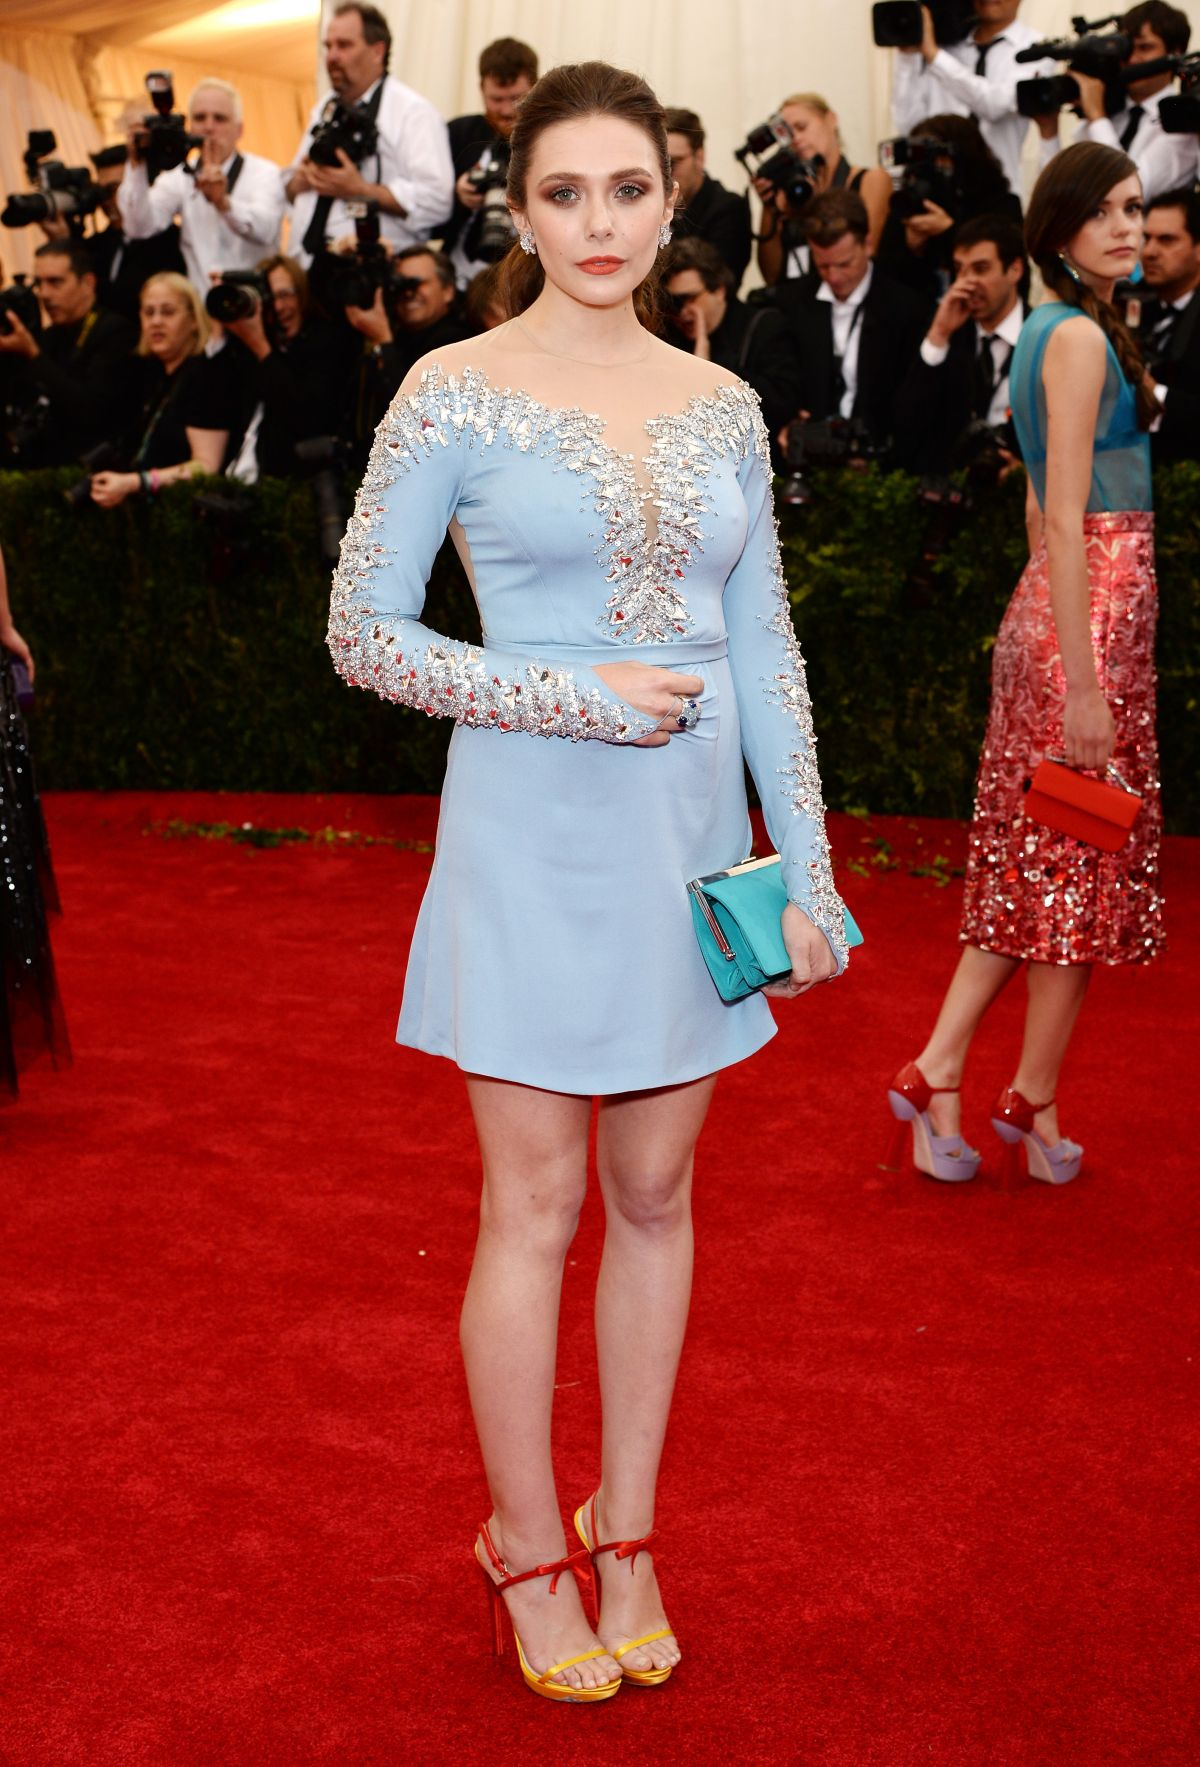 ELIZABETH OLSEN at MET Gala 2014 in New York